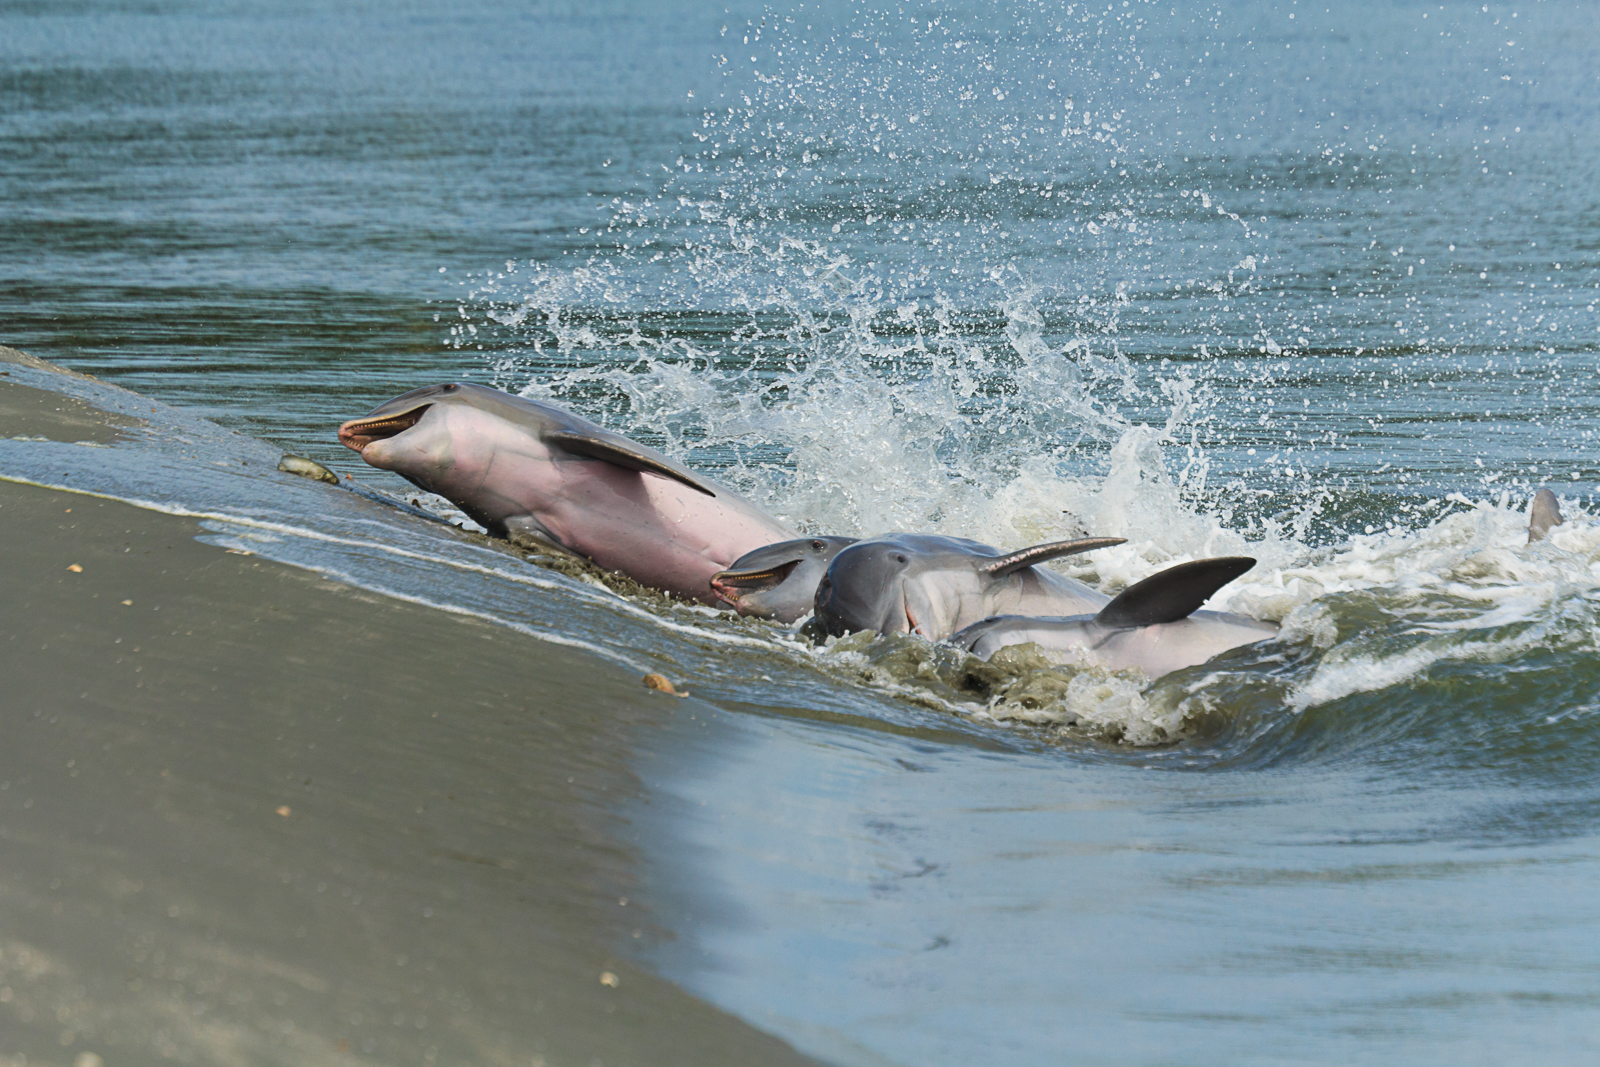 """HONORABLE MENTION Amateur category: Dolphin Strand Feeding by Patricia Schaefer; """"Dolphin strand feeding is a unique behavior seen in the Charleston area. The dolphin work together using echolocation to toss fish up onto the shore and then throw themselves on the bank to feed. They safely return to the water to try again if they are still hungry. Taken on Seabrook Island on September 15, 2015."""""""